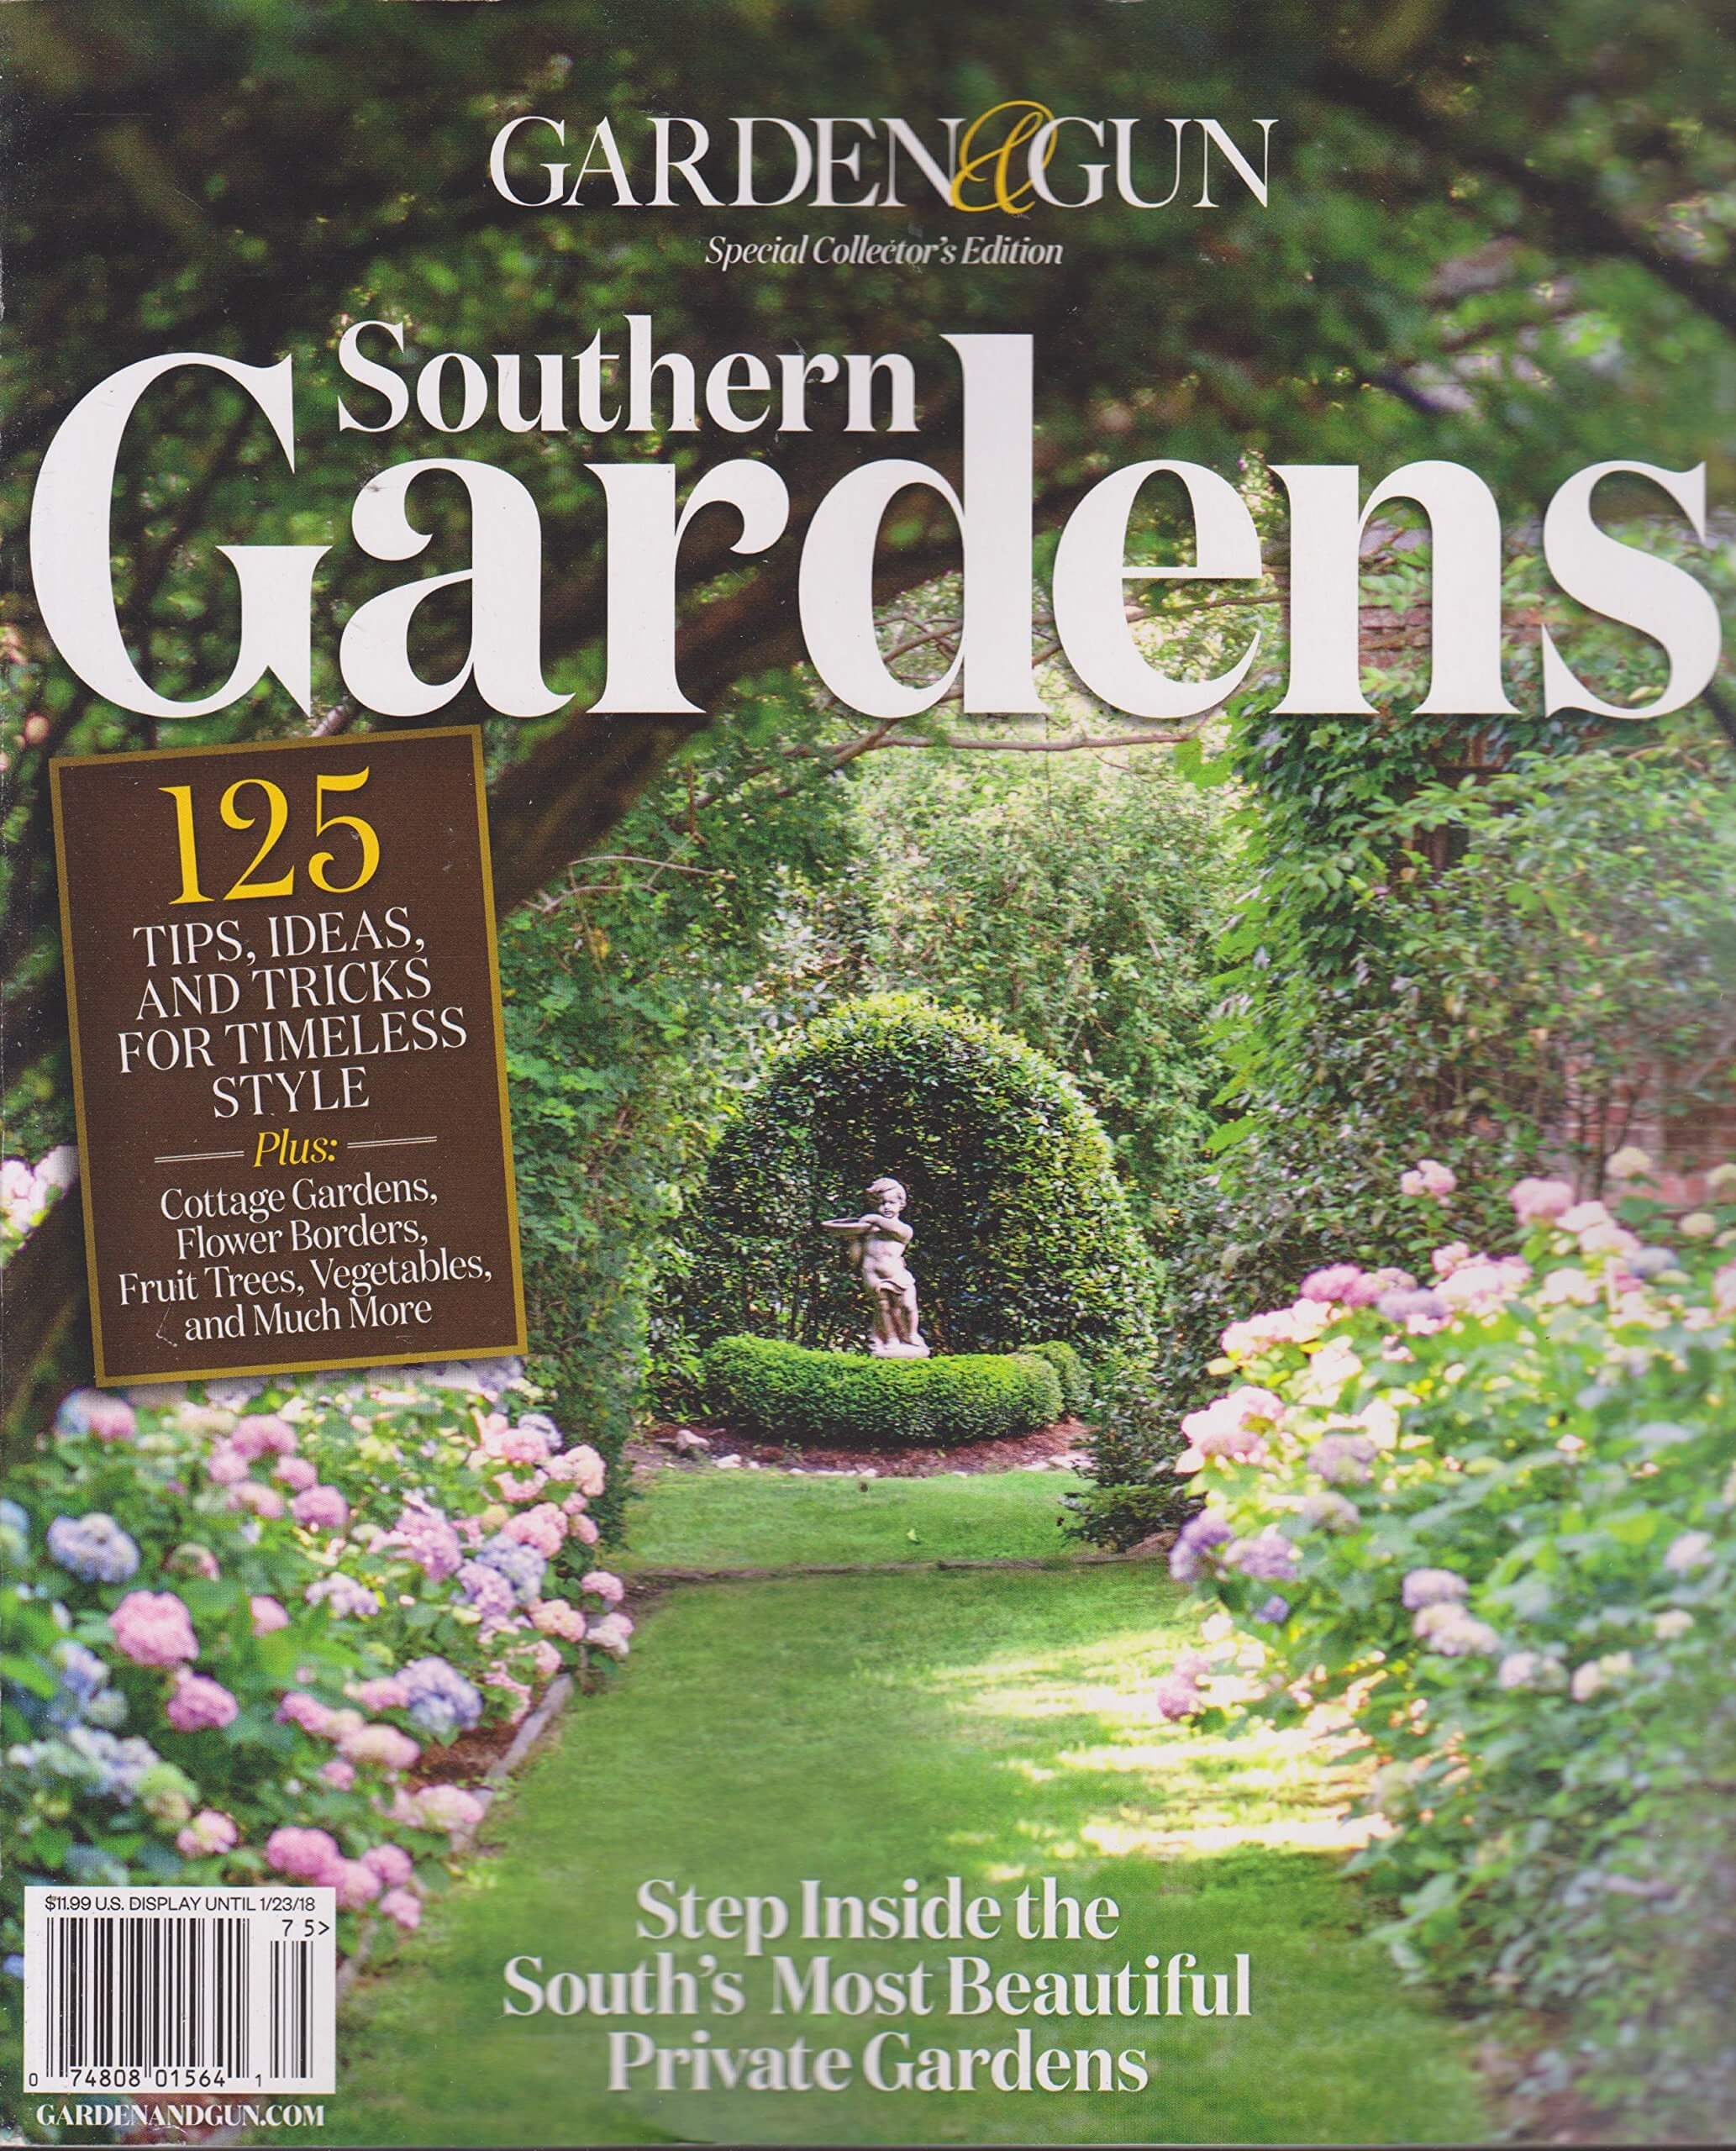 Garden and Gun Southern Gardens issue